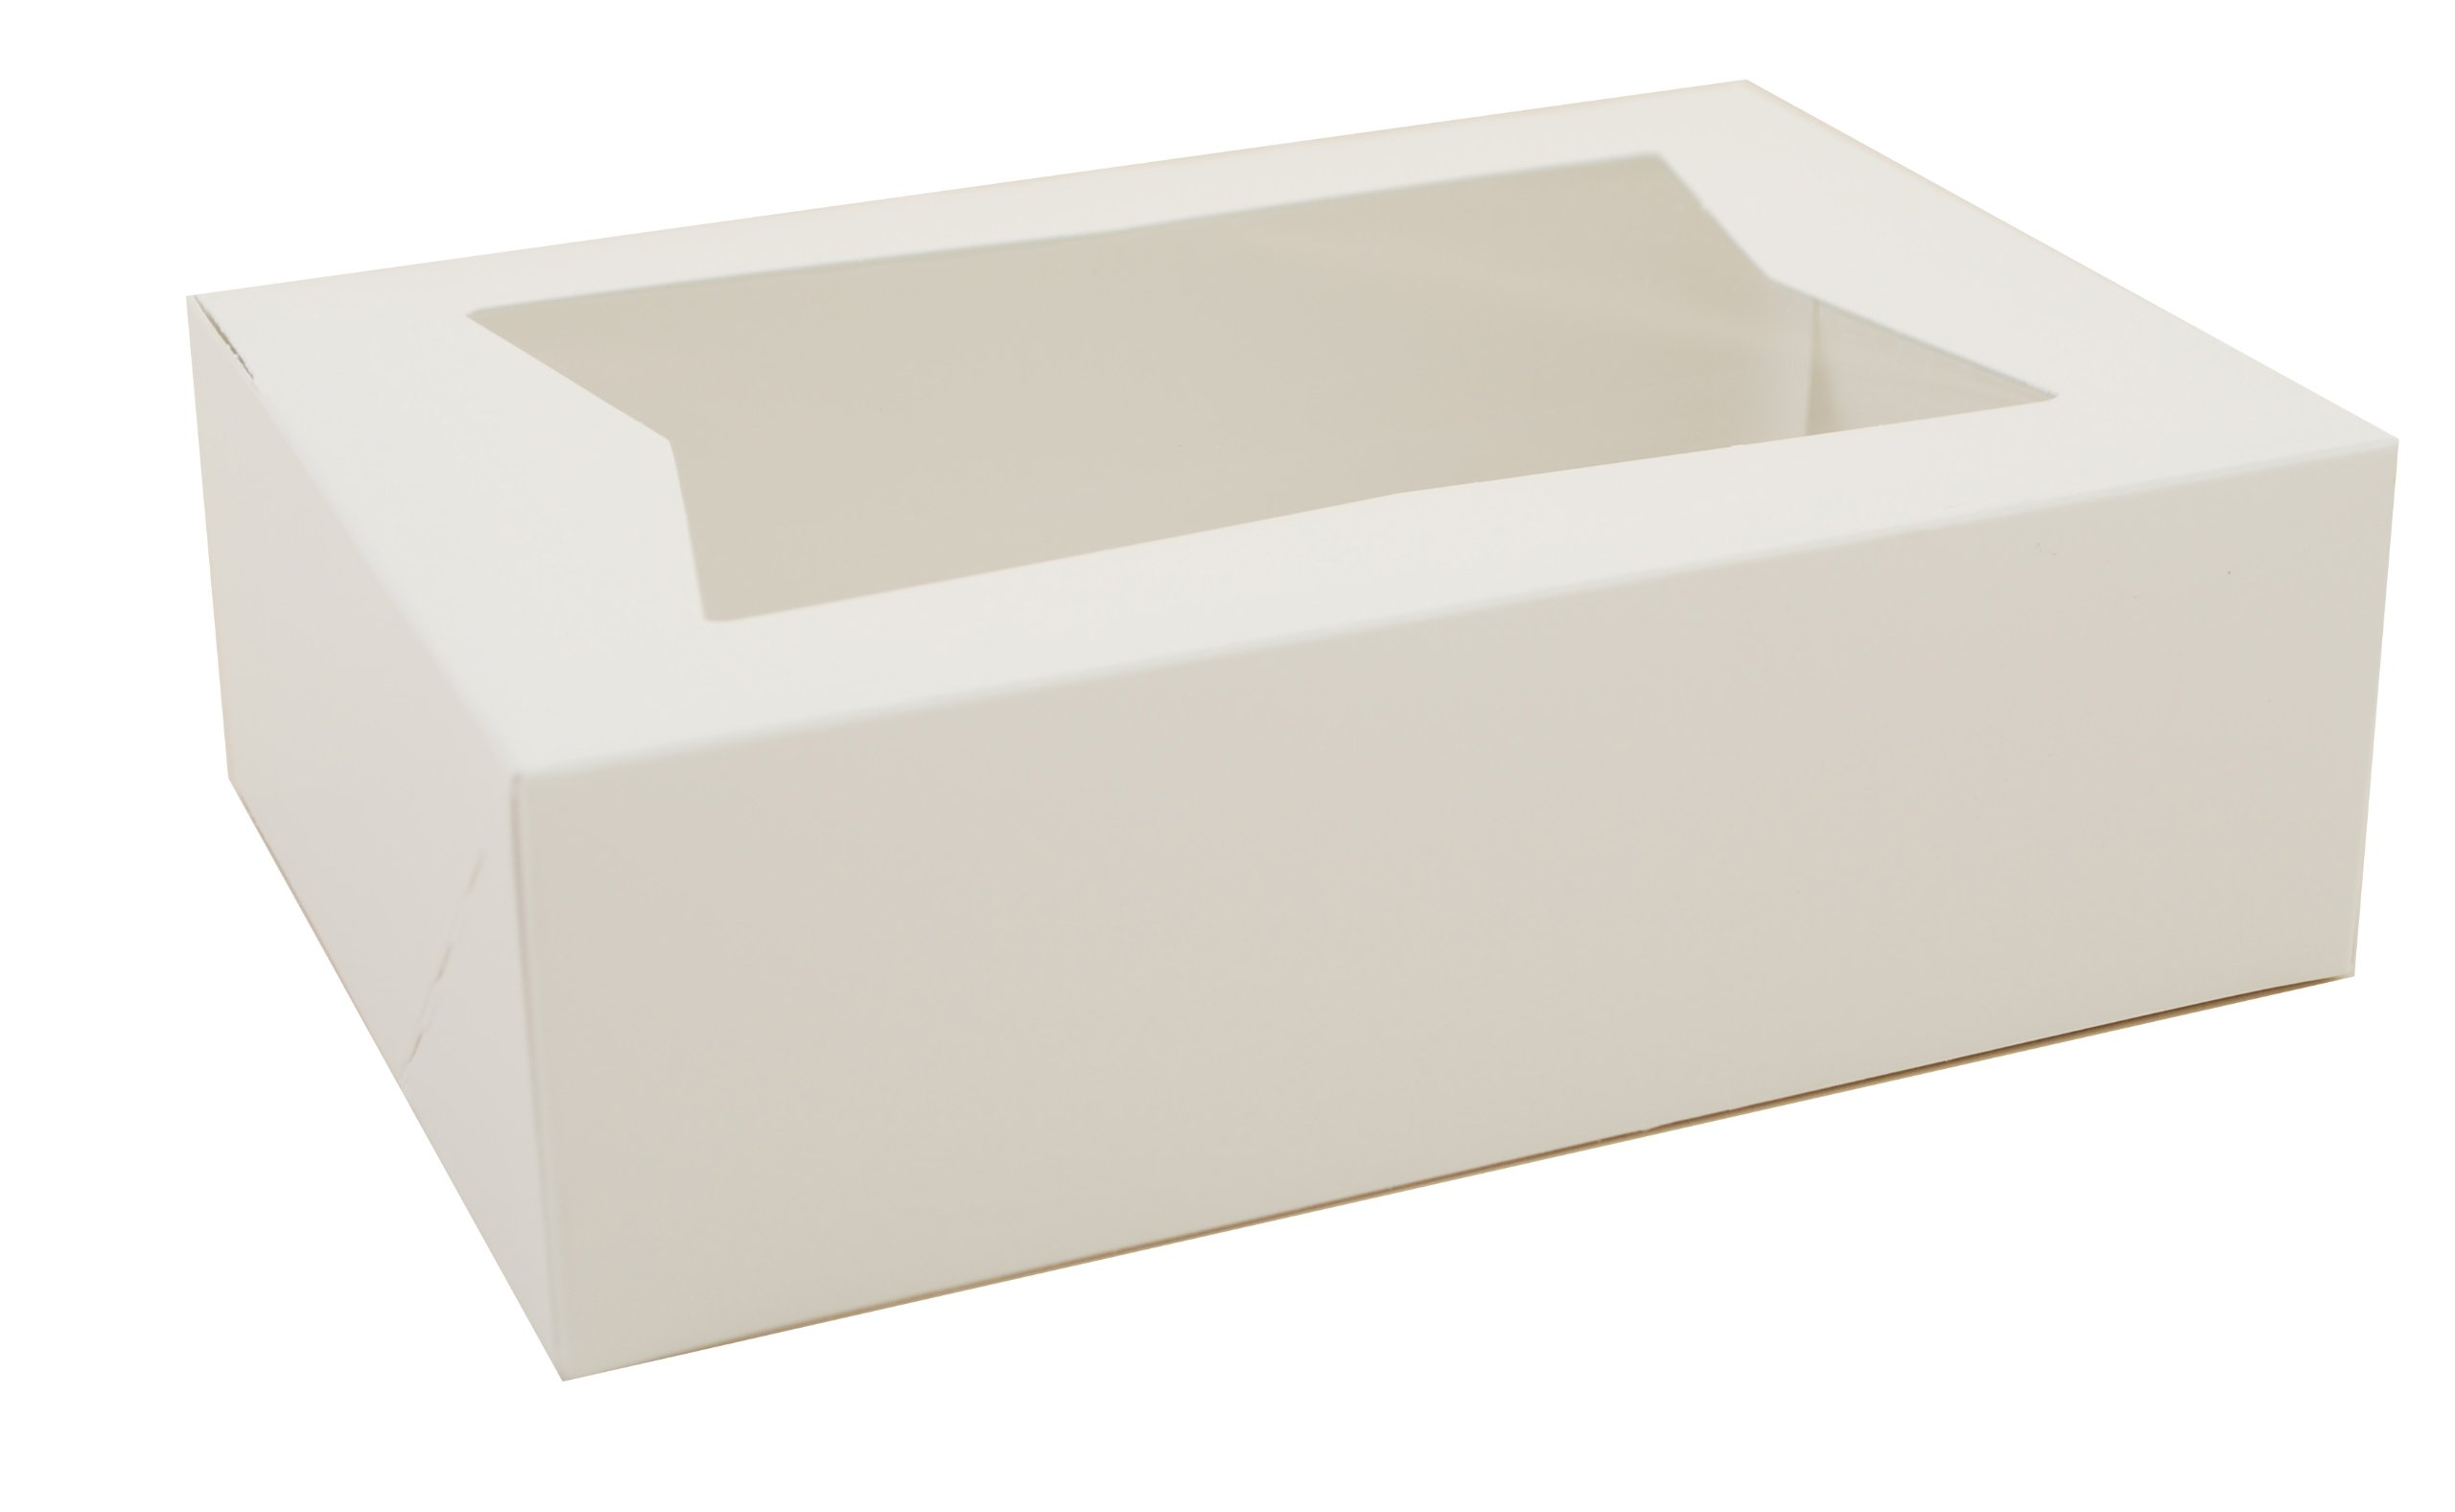 Southern Champion Tray 24003 Paperboard White Window Bakery Box, 8'' Length x 5-3/4 Width x 2-1/2 Height (Case of 200)